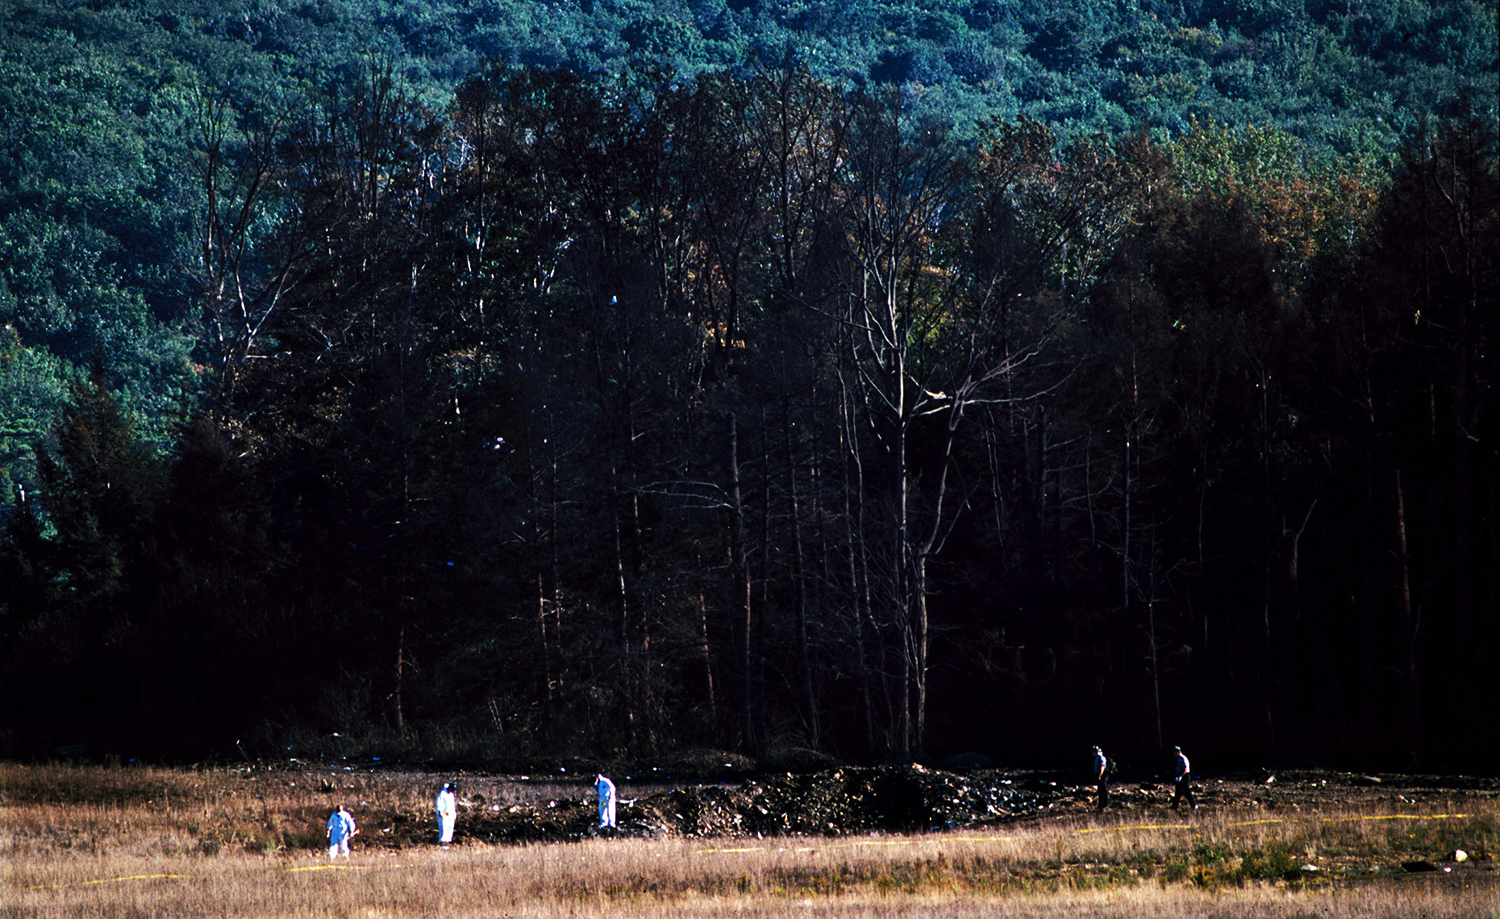 Men in white protective suits examine the crash site of Flight 93 with a scorched treeline behind them, Sept. 11, 2001. This was shot hours after the crash.